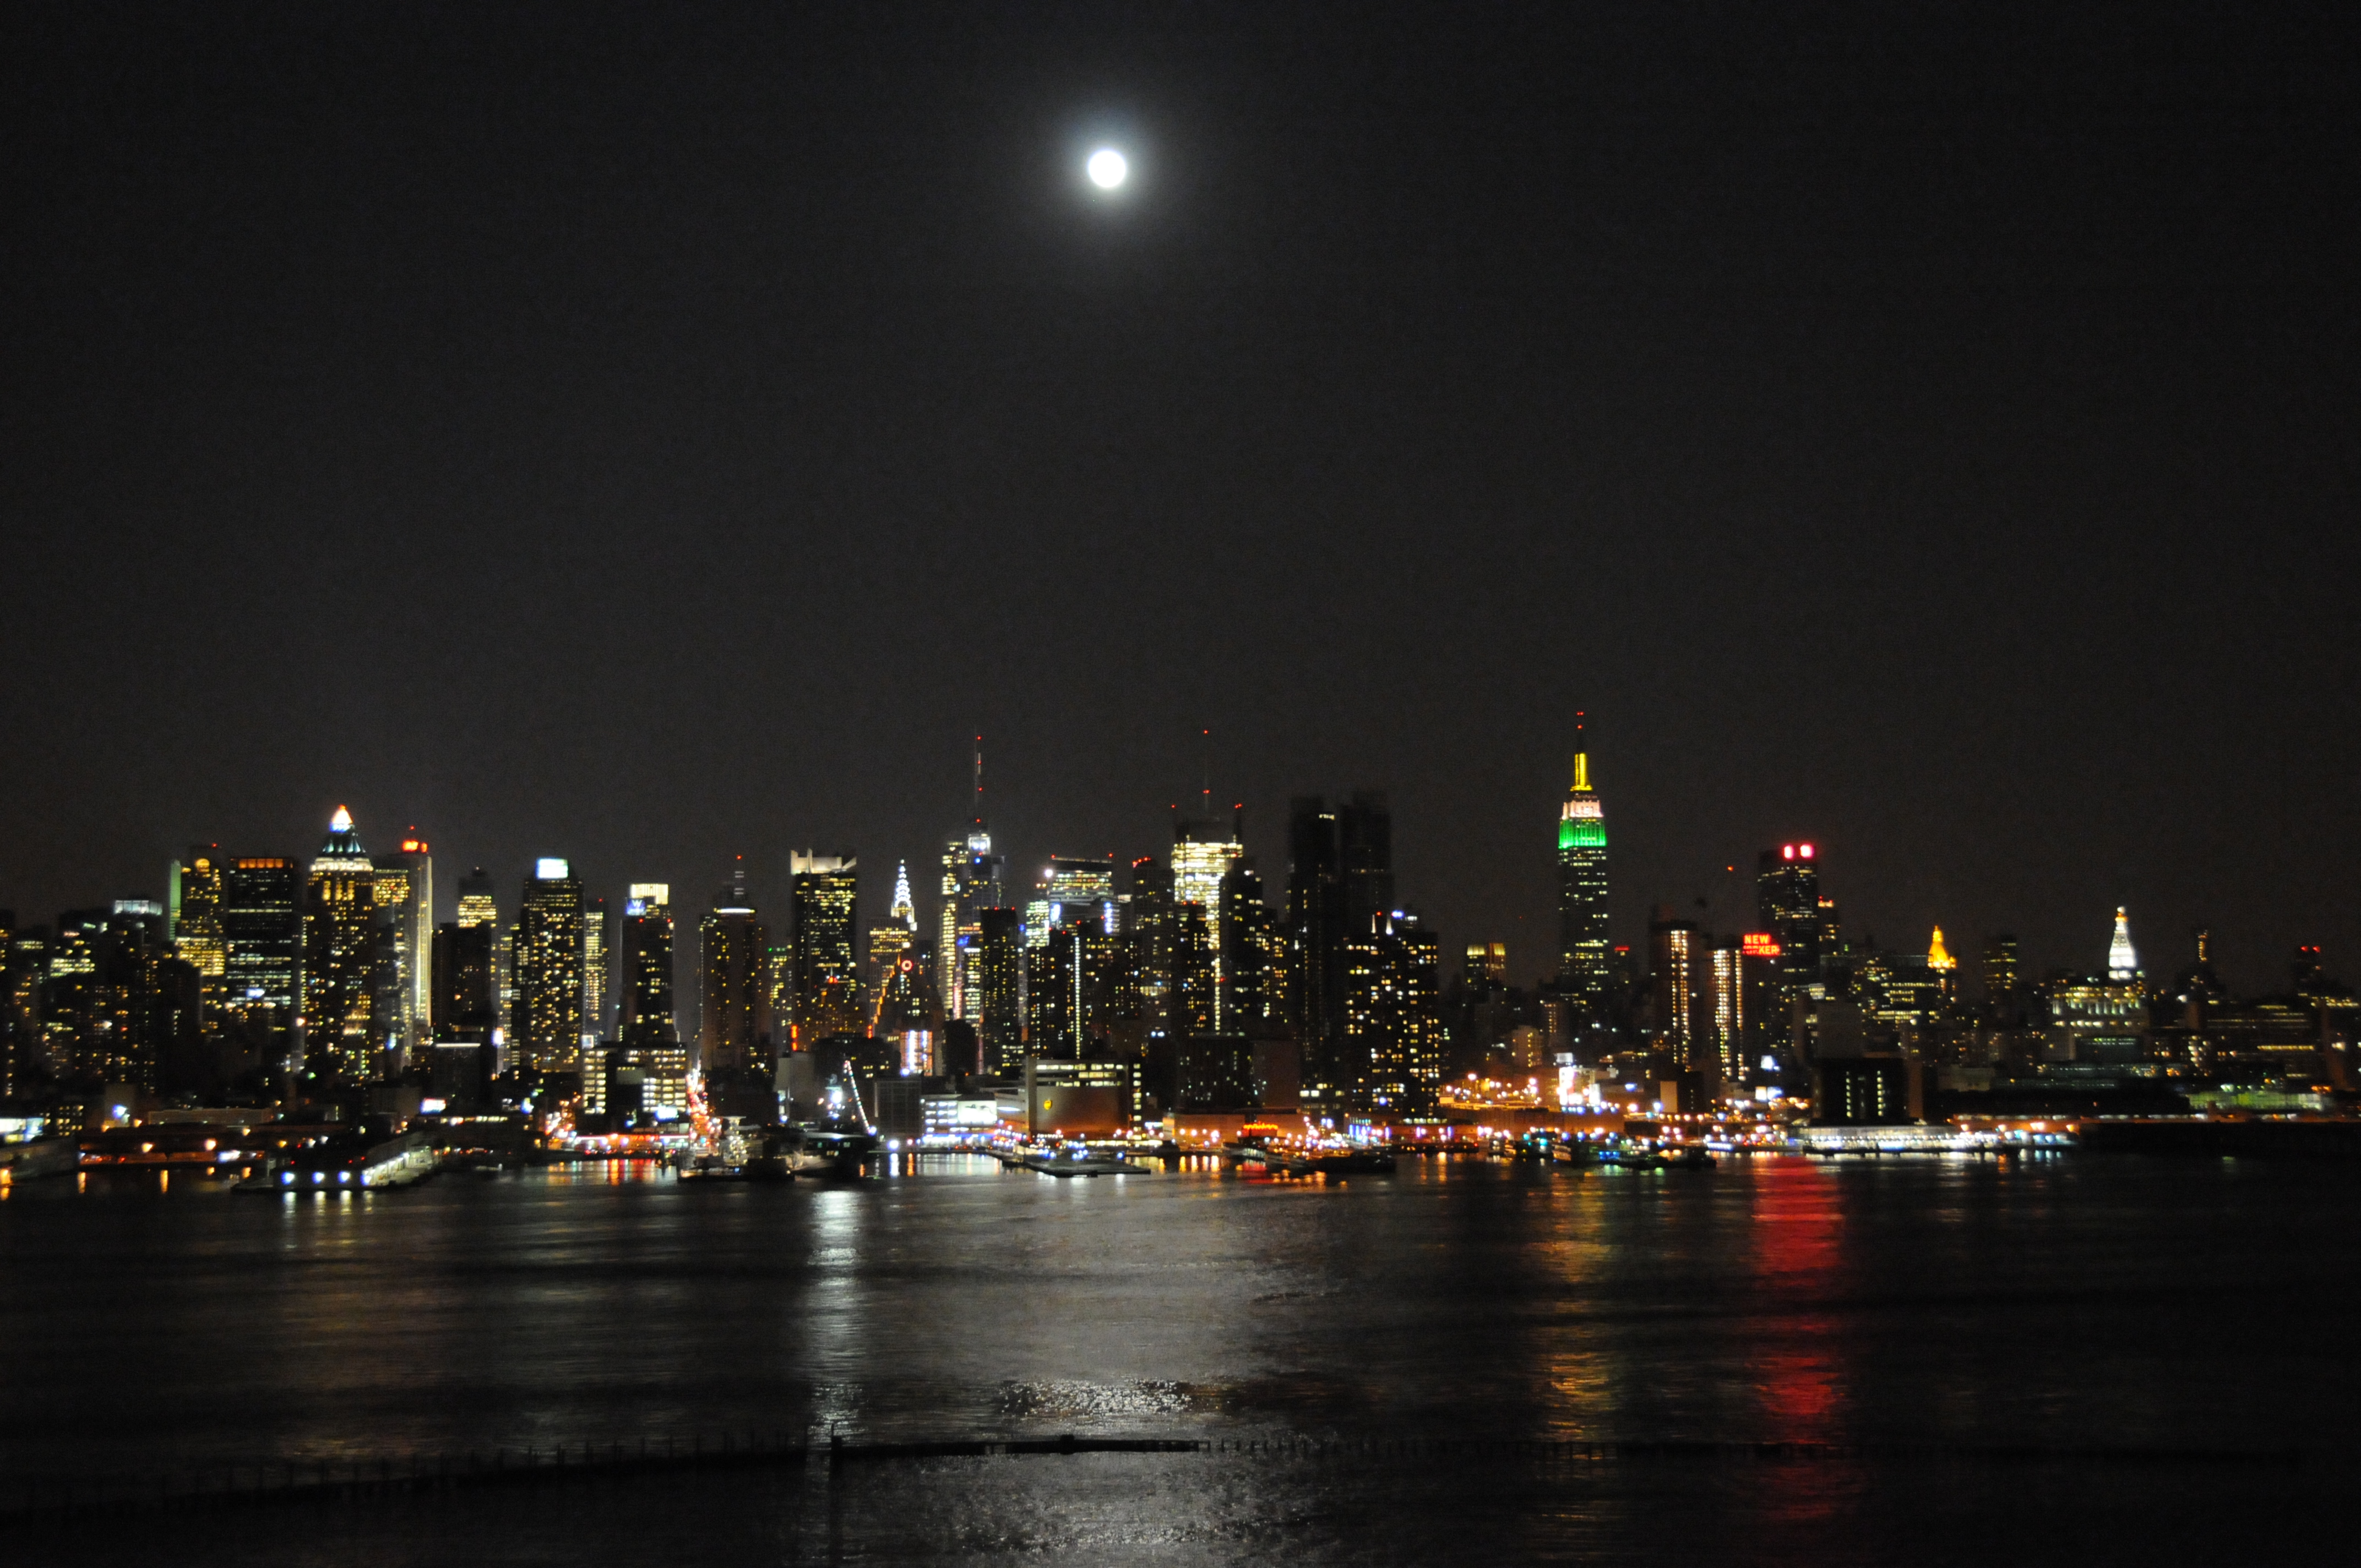 NYC from across the Hudson River